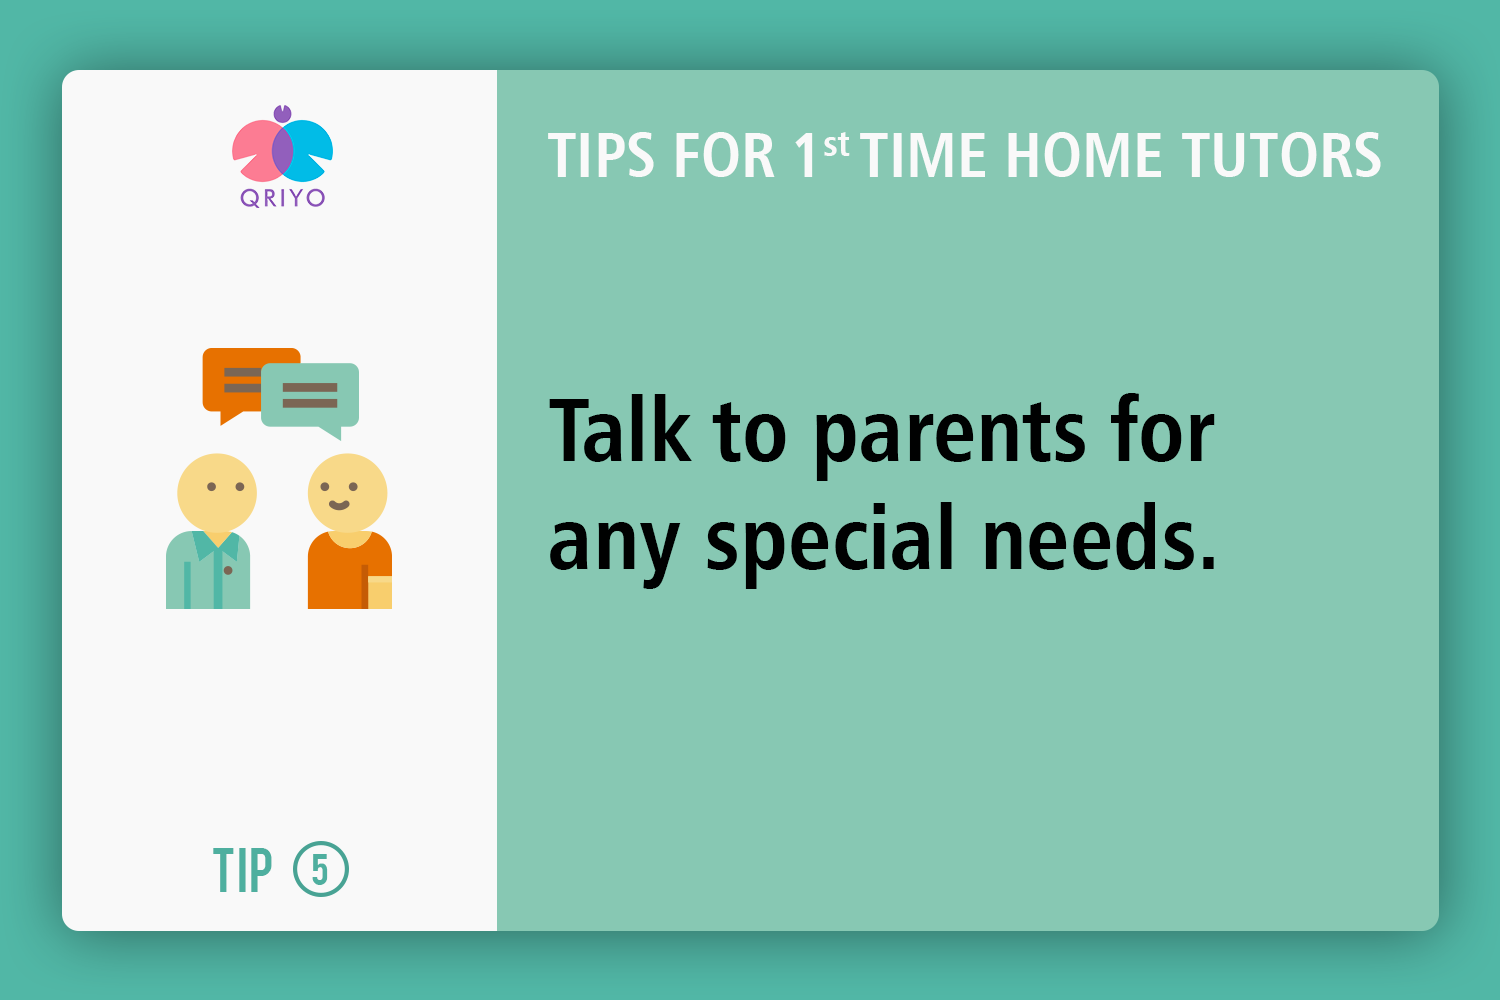 Talk to parents for special needs.